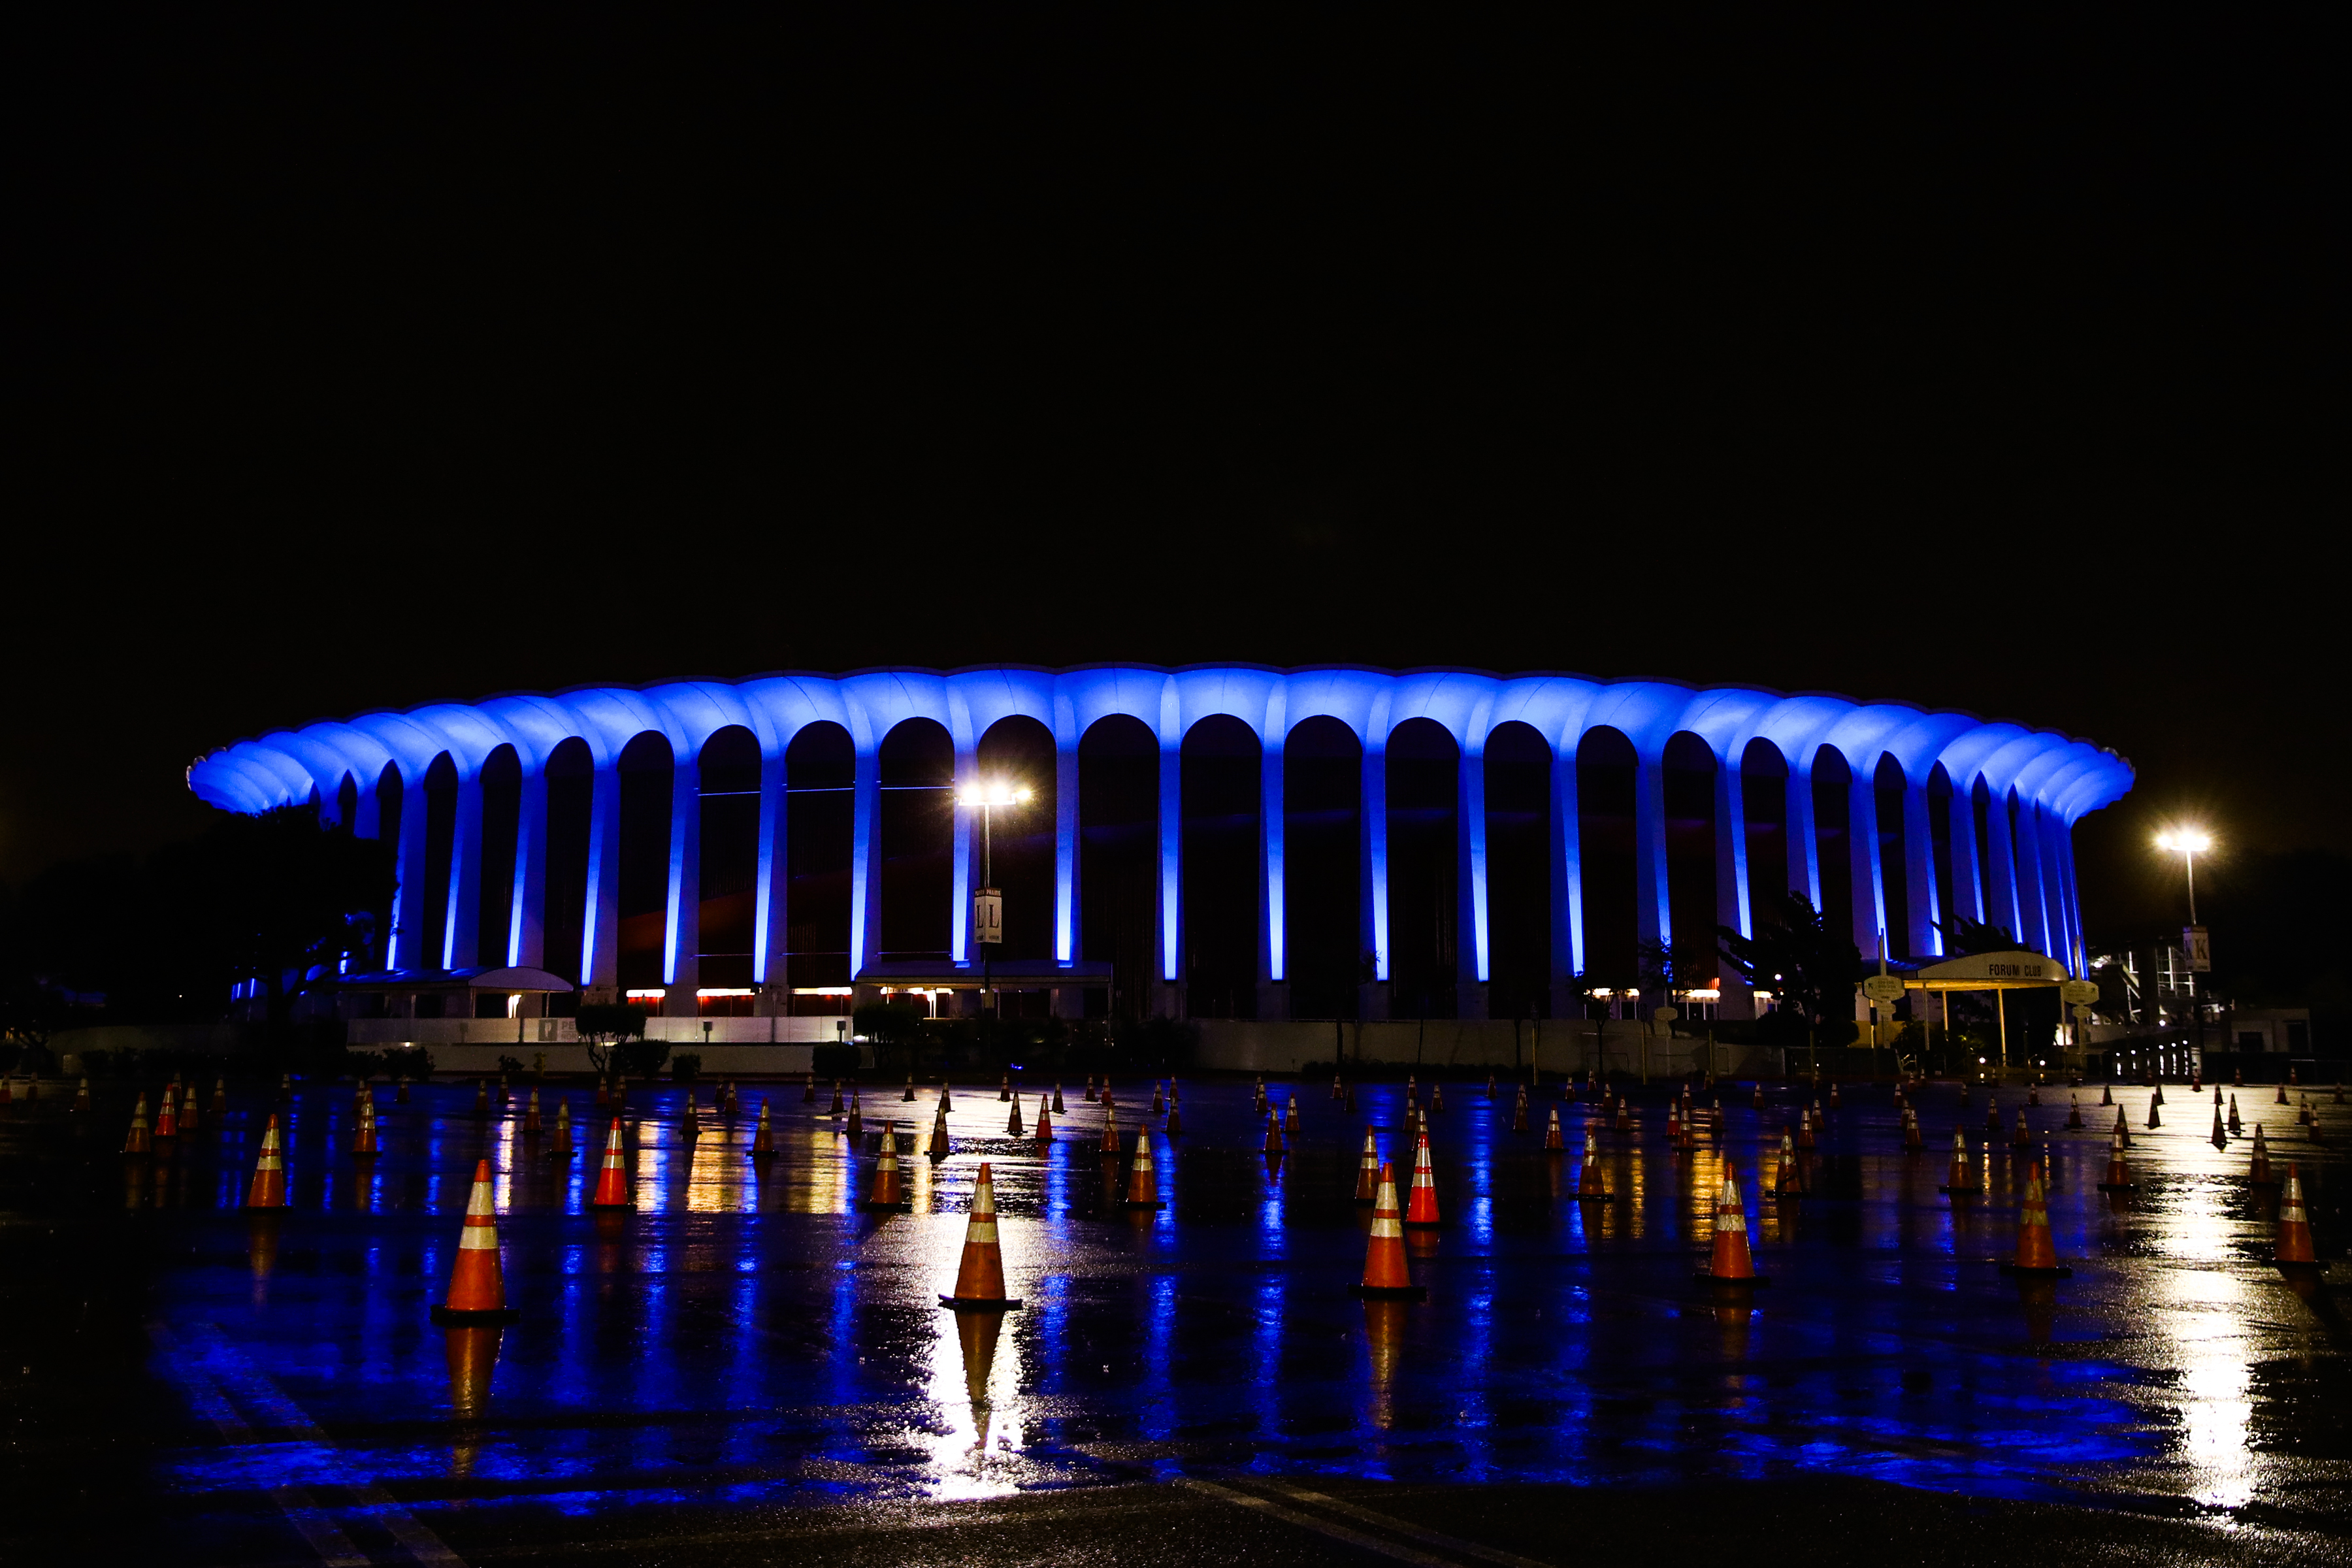 INGLEWOOD, CALIFORNIA - APRIL 09: The Forum is illuminated in blue lights as part of the #LightItBlue for Health Workers movement on April 09, 2020 in Inglewood, United States. Landmarks and buildings across the nation are displaying blue lights to show support for health care workers and first responders on the front lines of the COVID-19 pandemic. (Photo by Rich Fury/Getty Images)